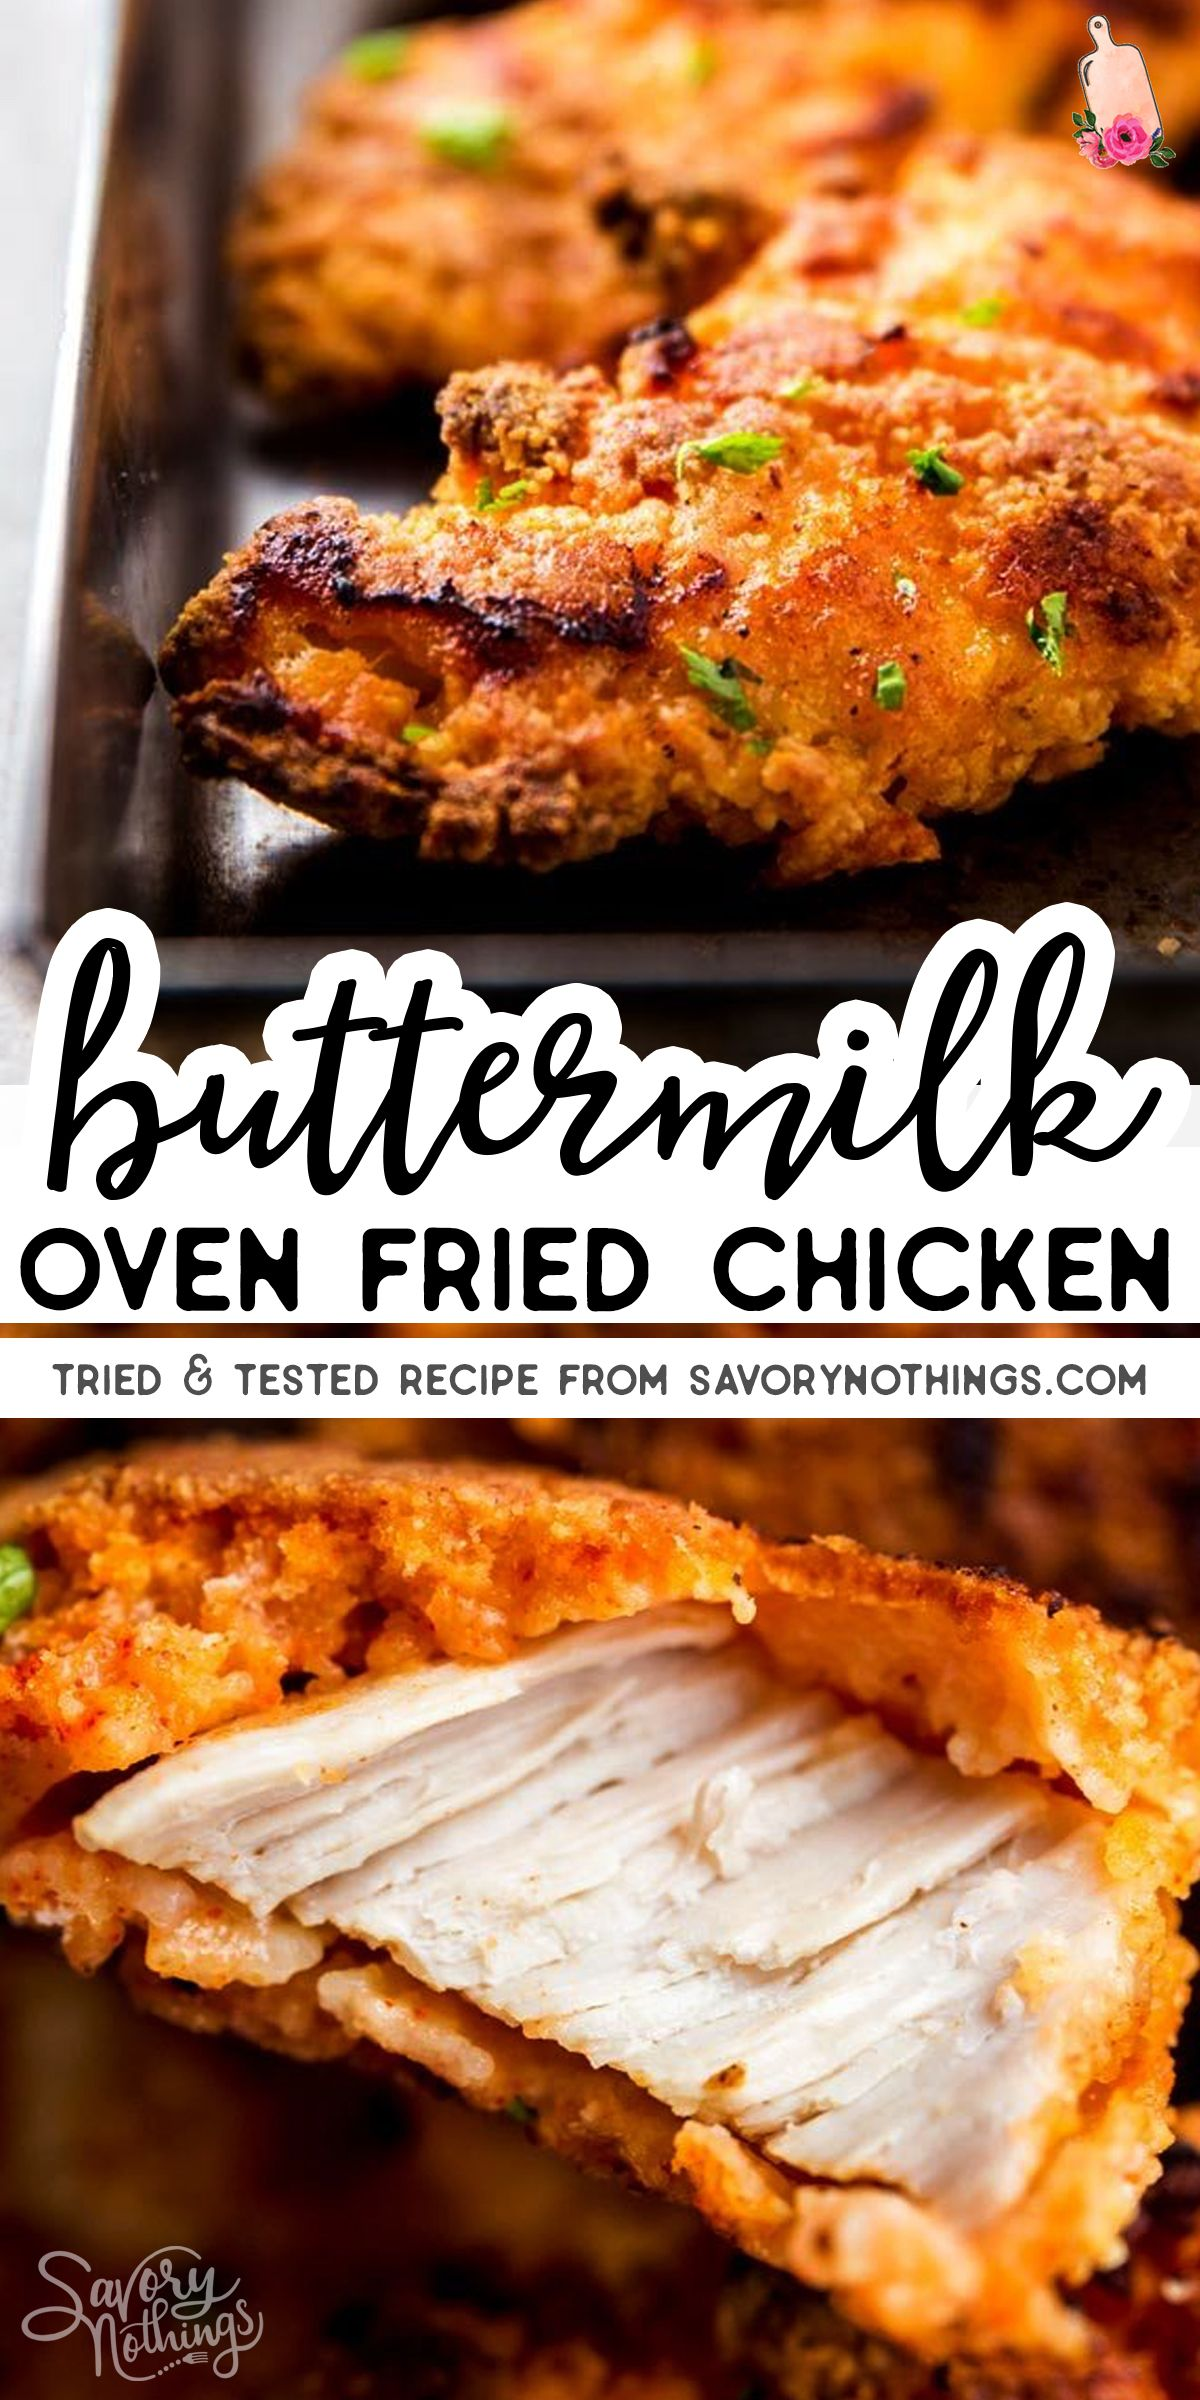 The Best Crispy Buttermilk Oven Fried Chicken You Won T Be Disappointed By This Rec In 2020 Buttermilk Oven Fried Chicken Chicken Dinner Recipes Fried Chicken Recipes